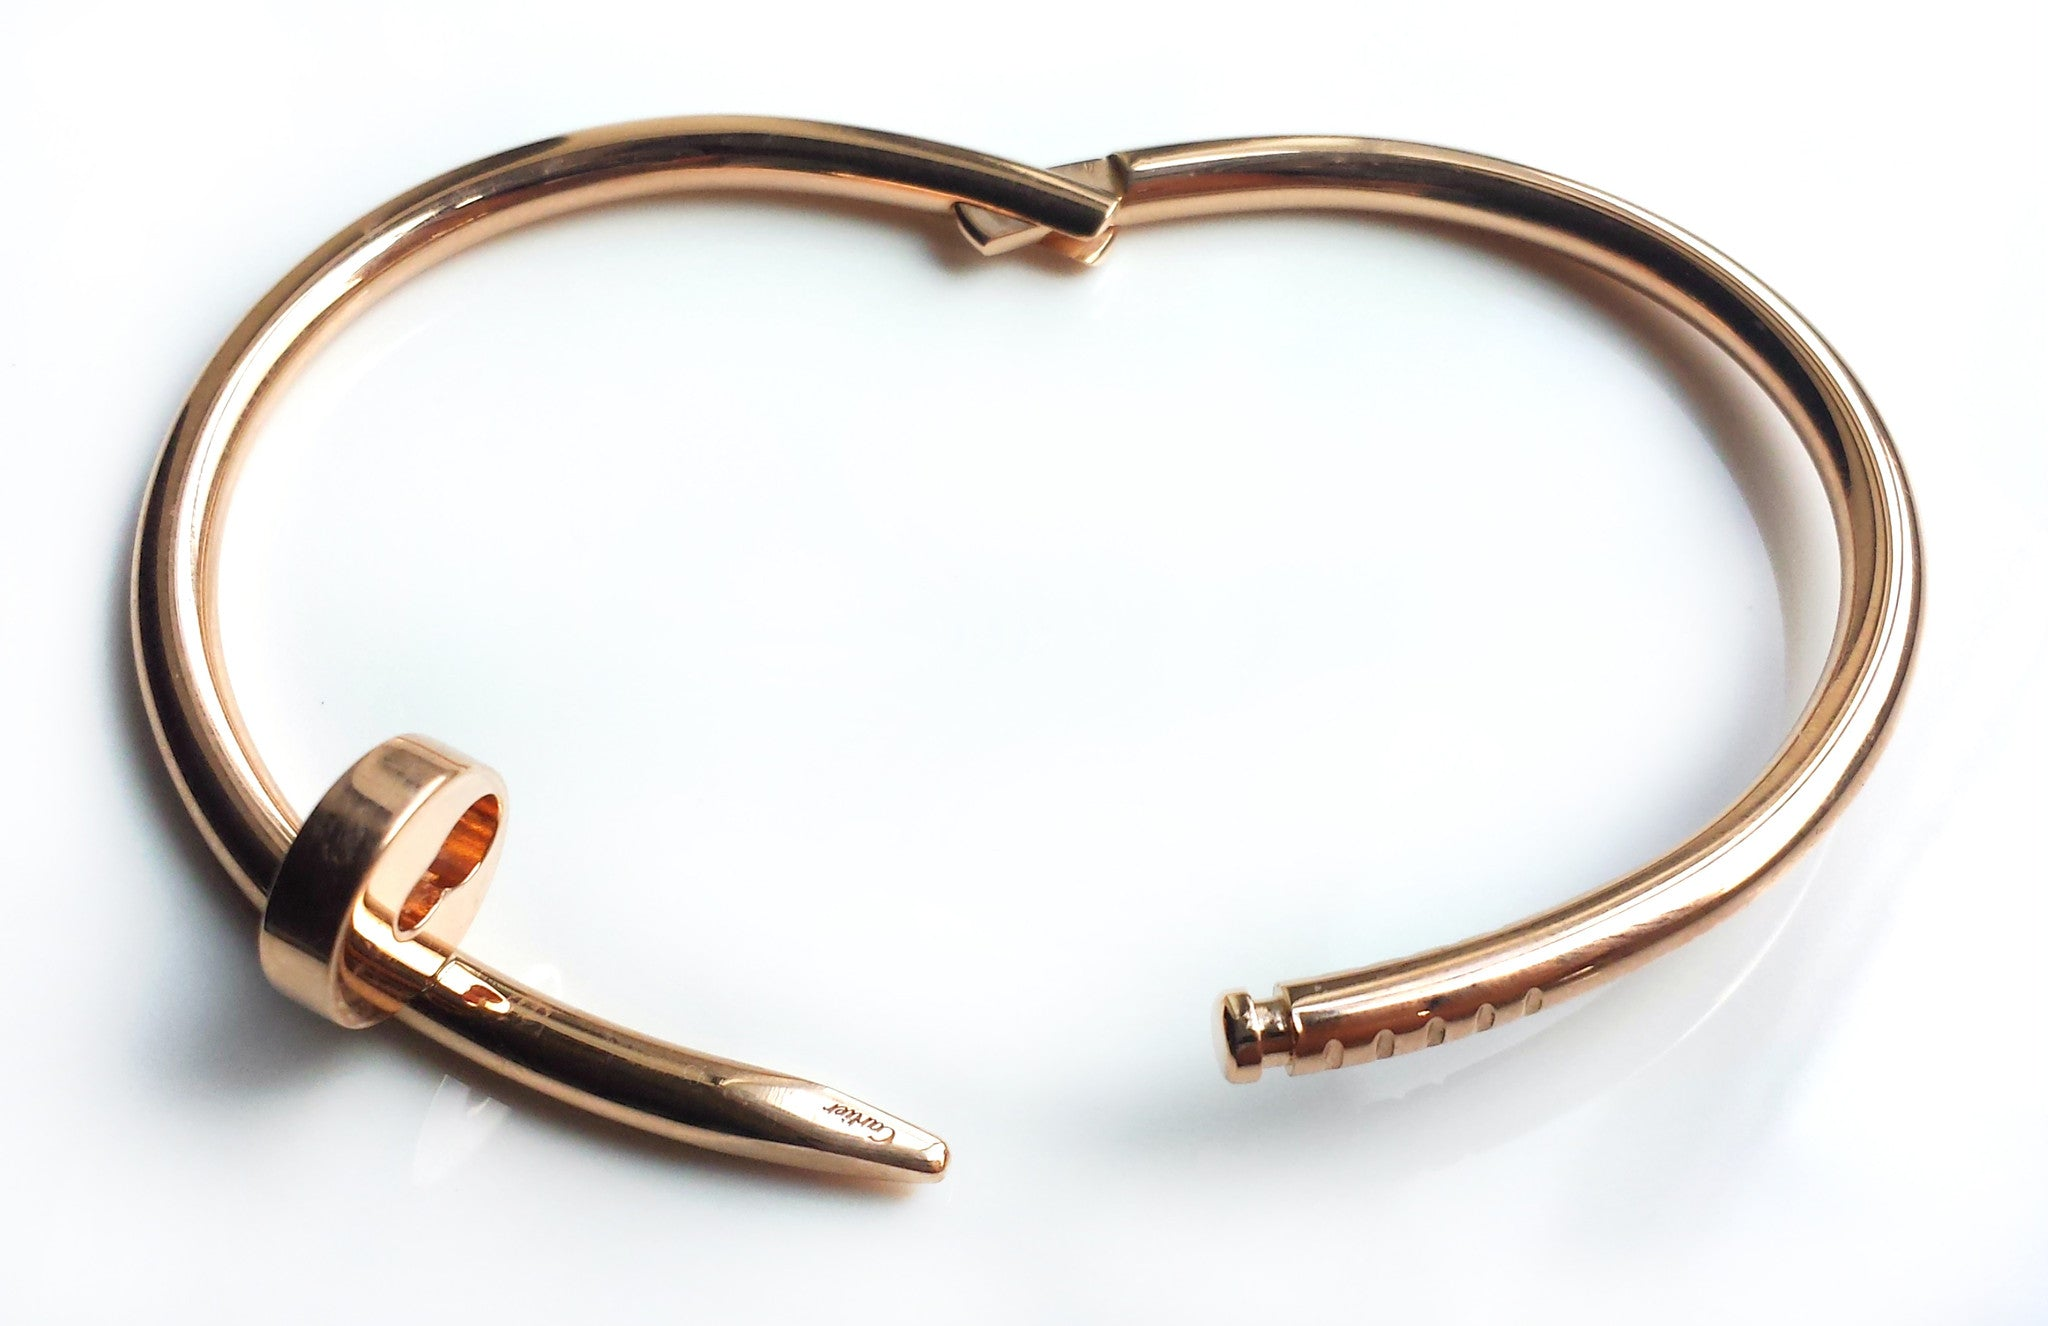 bangles love bridget ashley bracelet products bangle signature gold beed